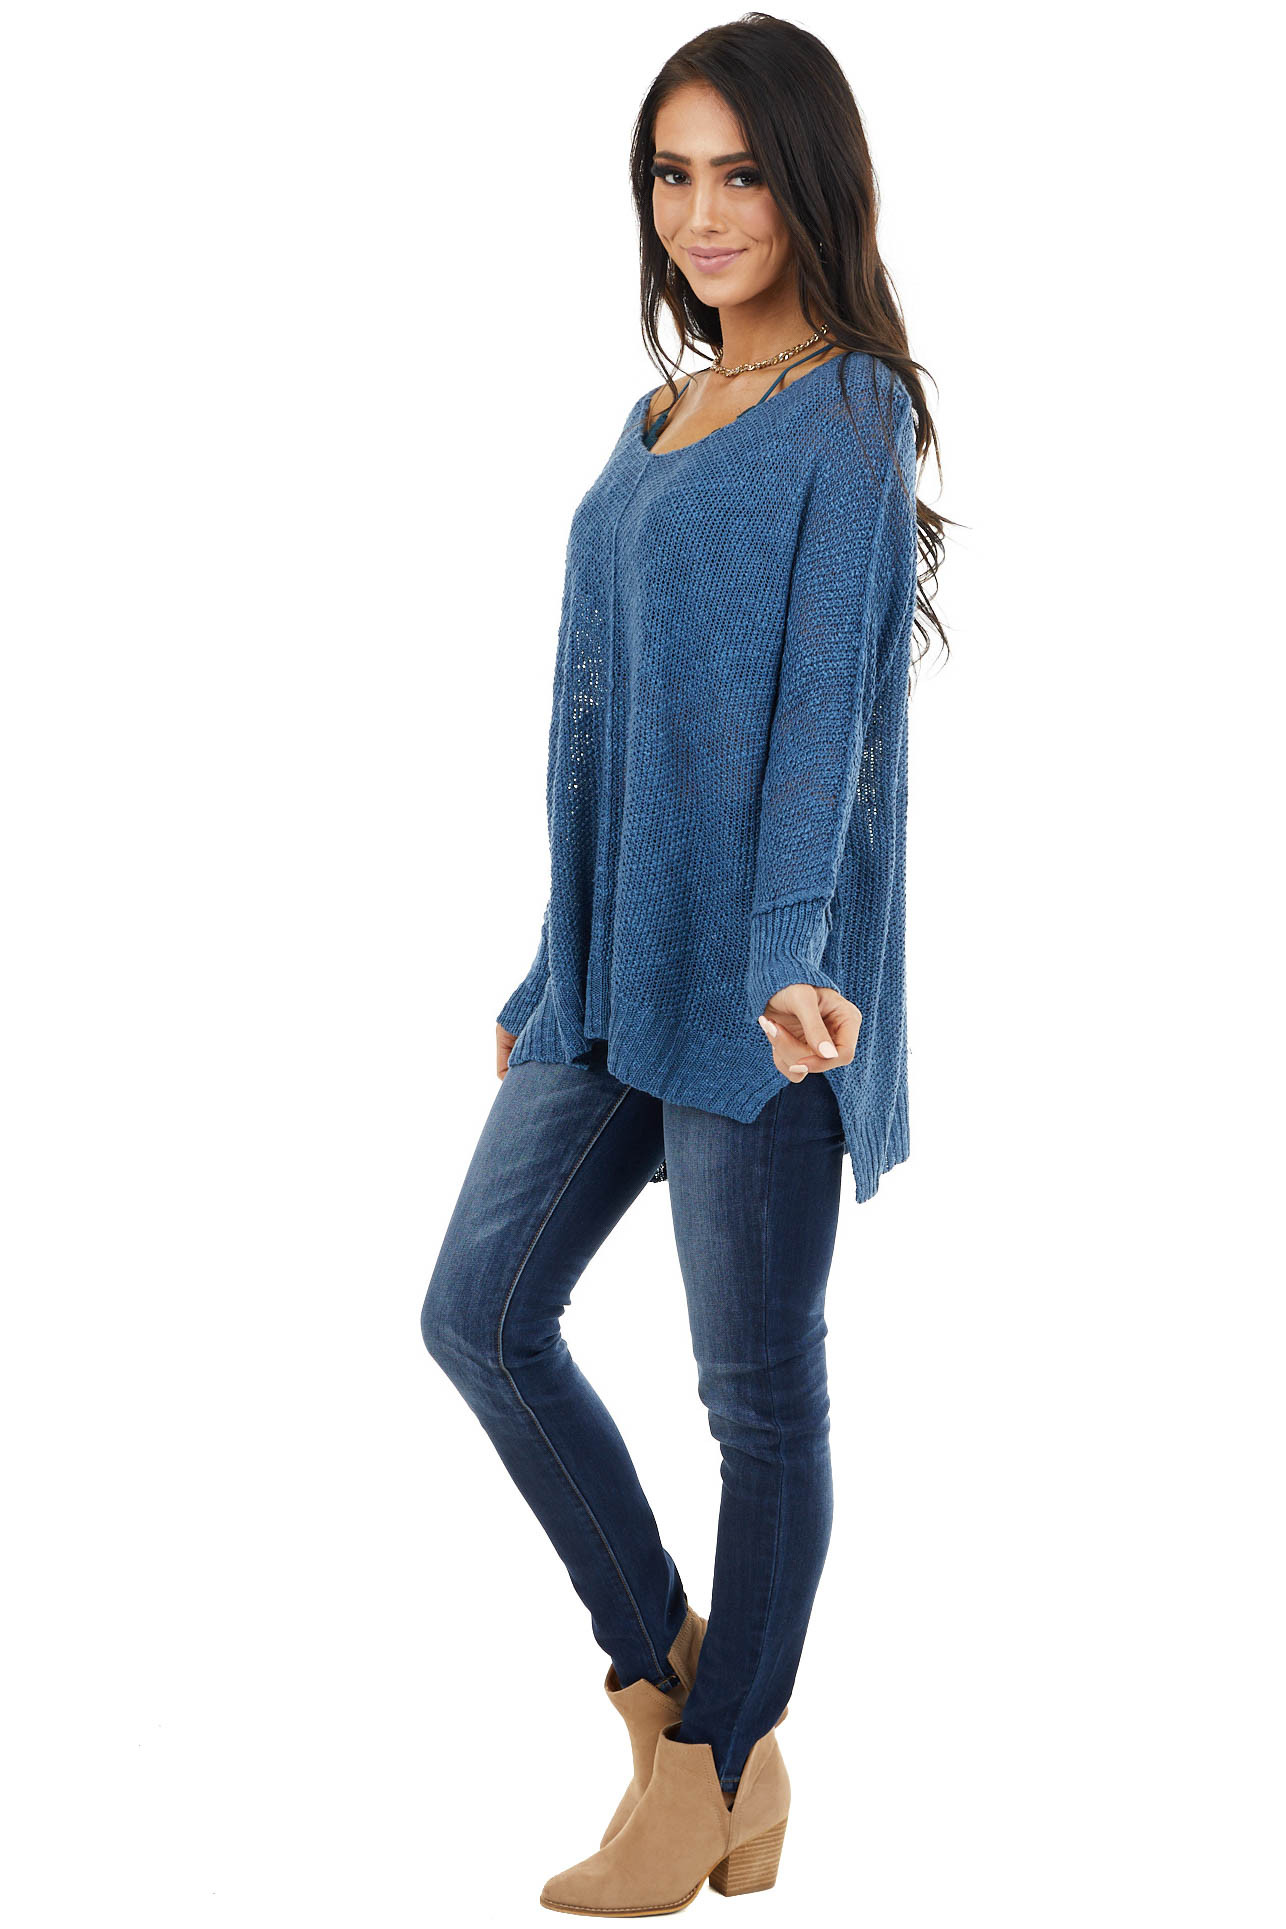 Dark Cornflower Knit Lightweight Sweater with Long Sleeves